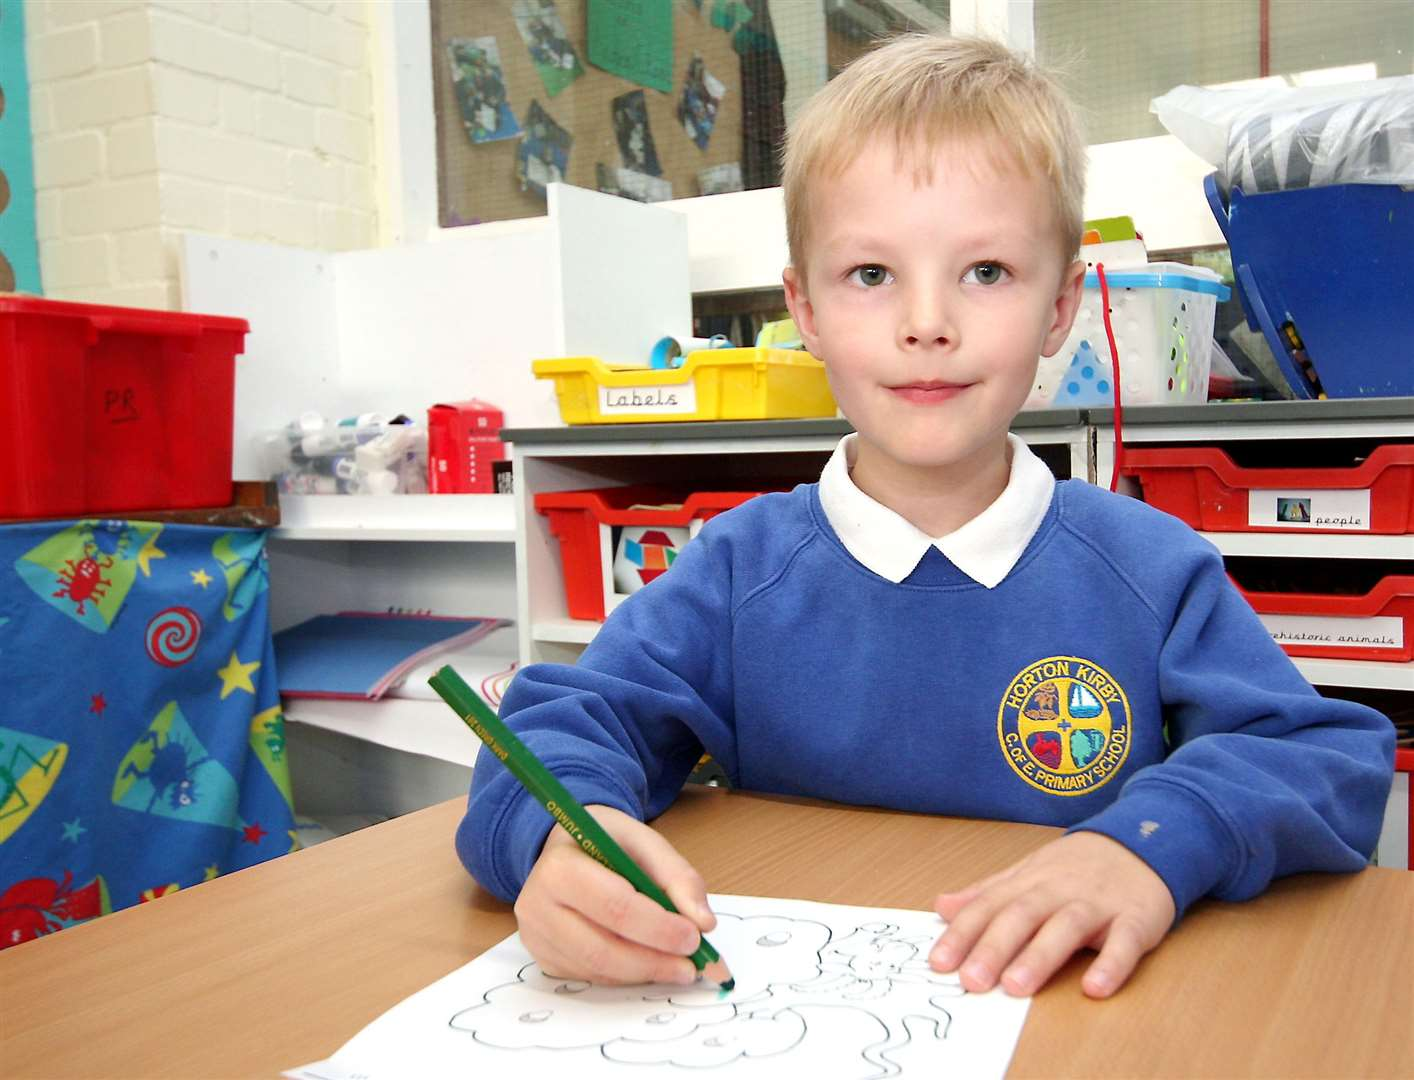 Hundreds of four and five-year-olds will be included from across the county